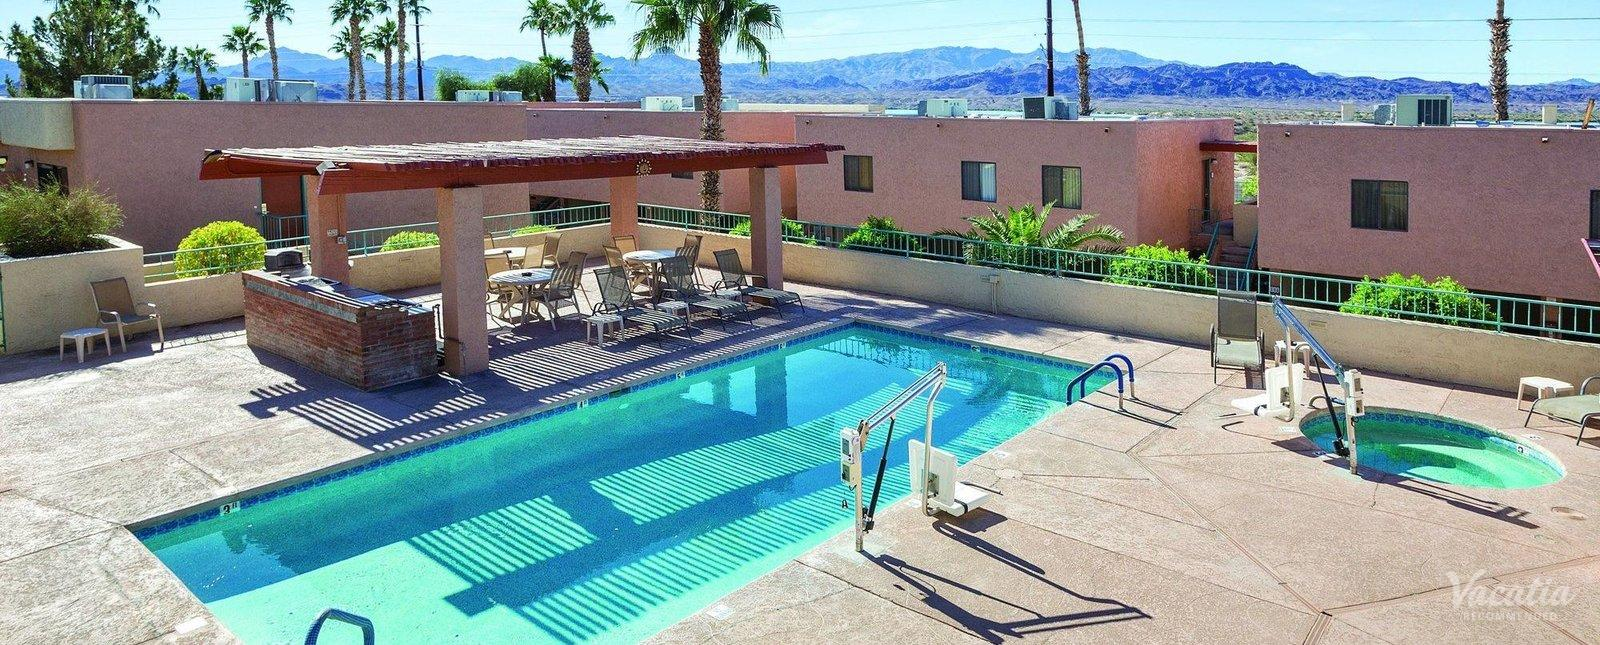 Havasu Dunes Resort Pools